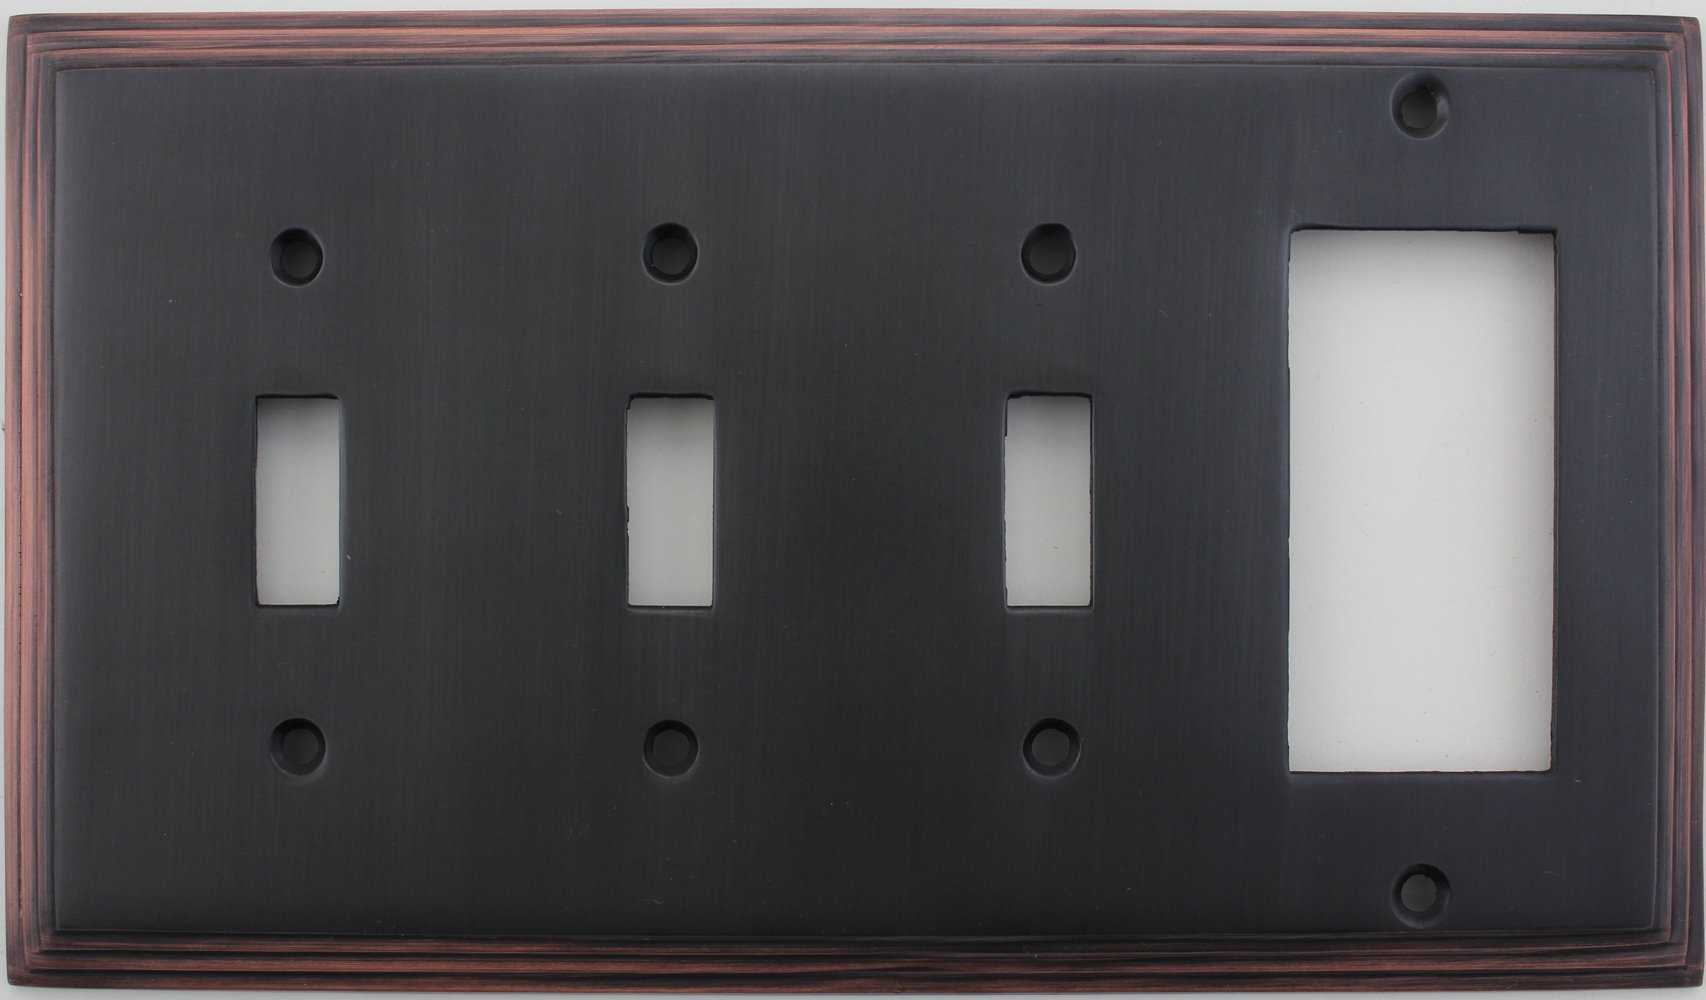 Oil Rubbed Bronze Deco Step Style Switch Plate - Three Toggle Light Switch Openings One GFI/Rocker Opening